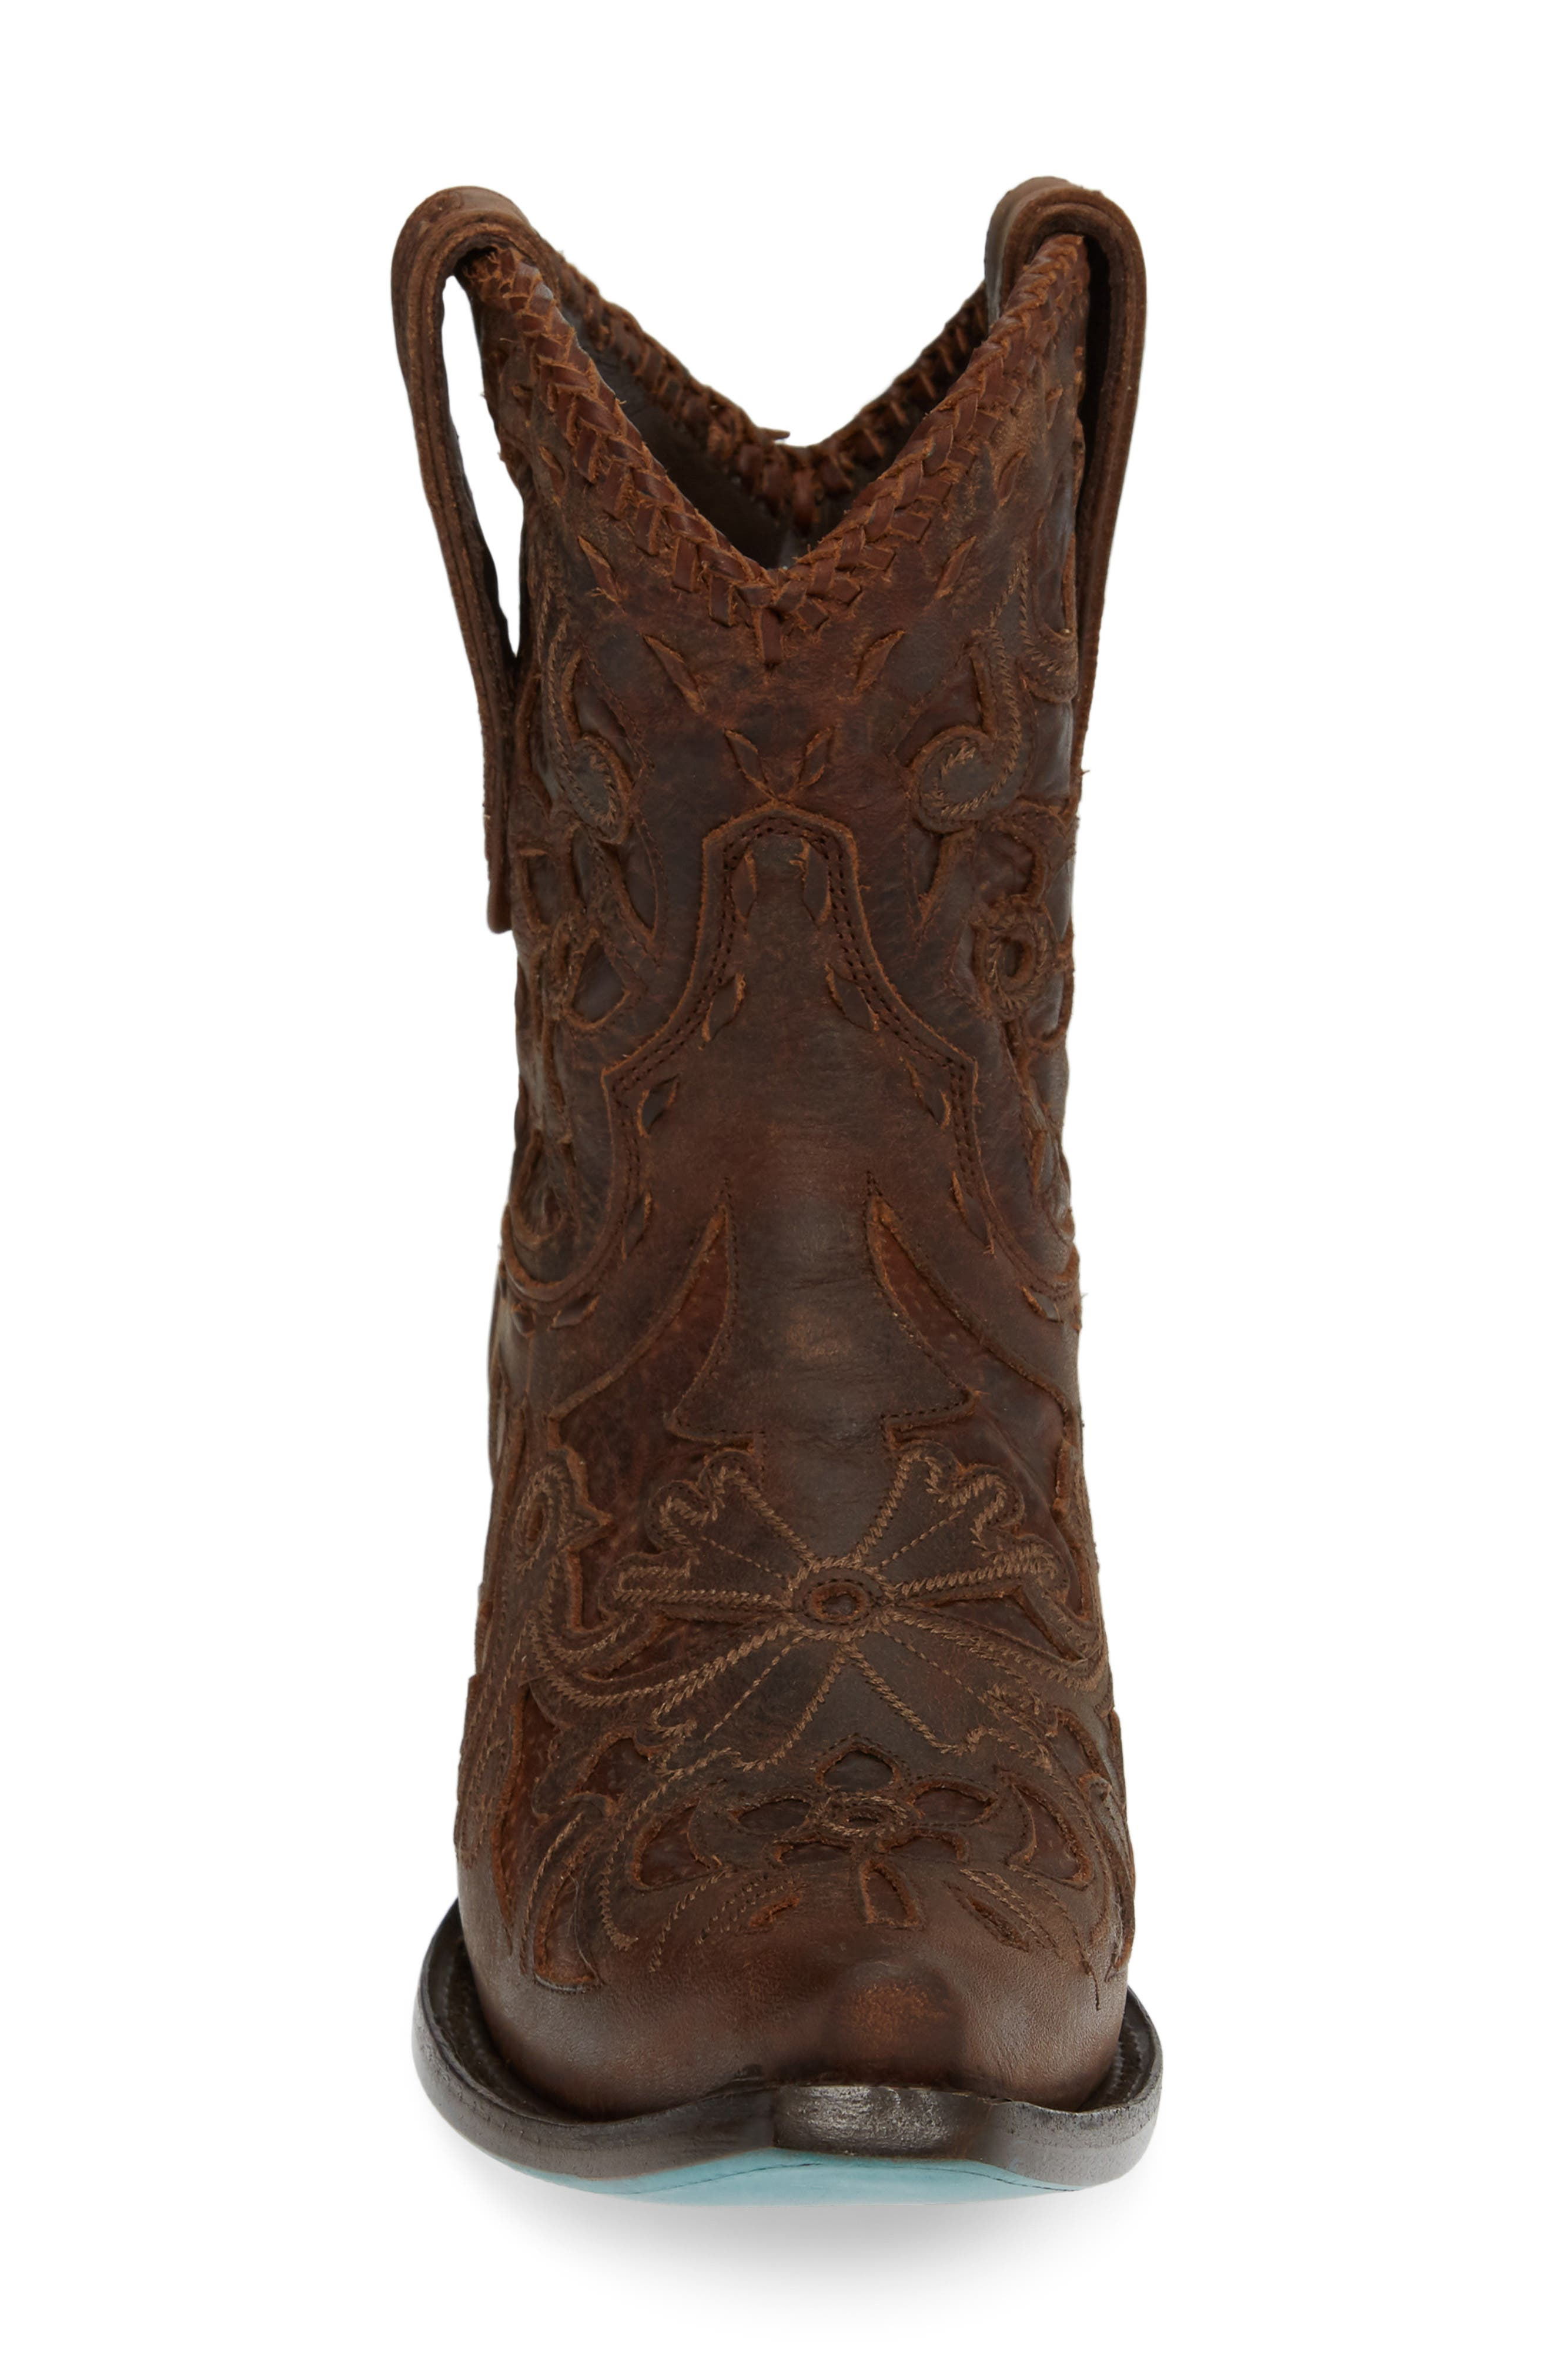 LANE BOOTS,                             Robin Western Boot,                             Alternate thumbnail 4, color,                             DARK BROWN LEATHER